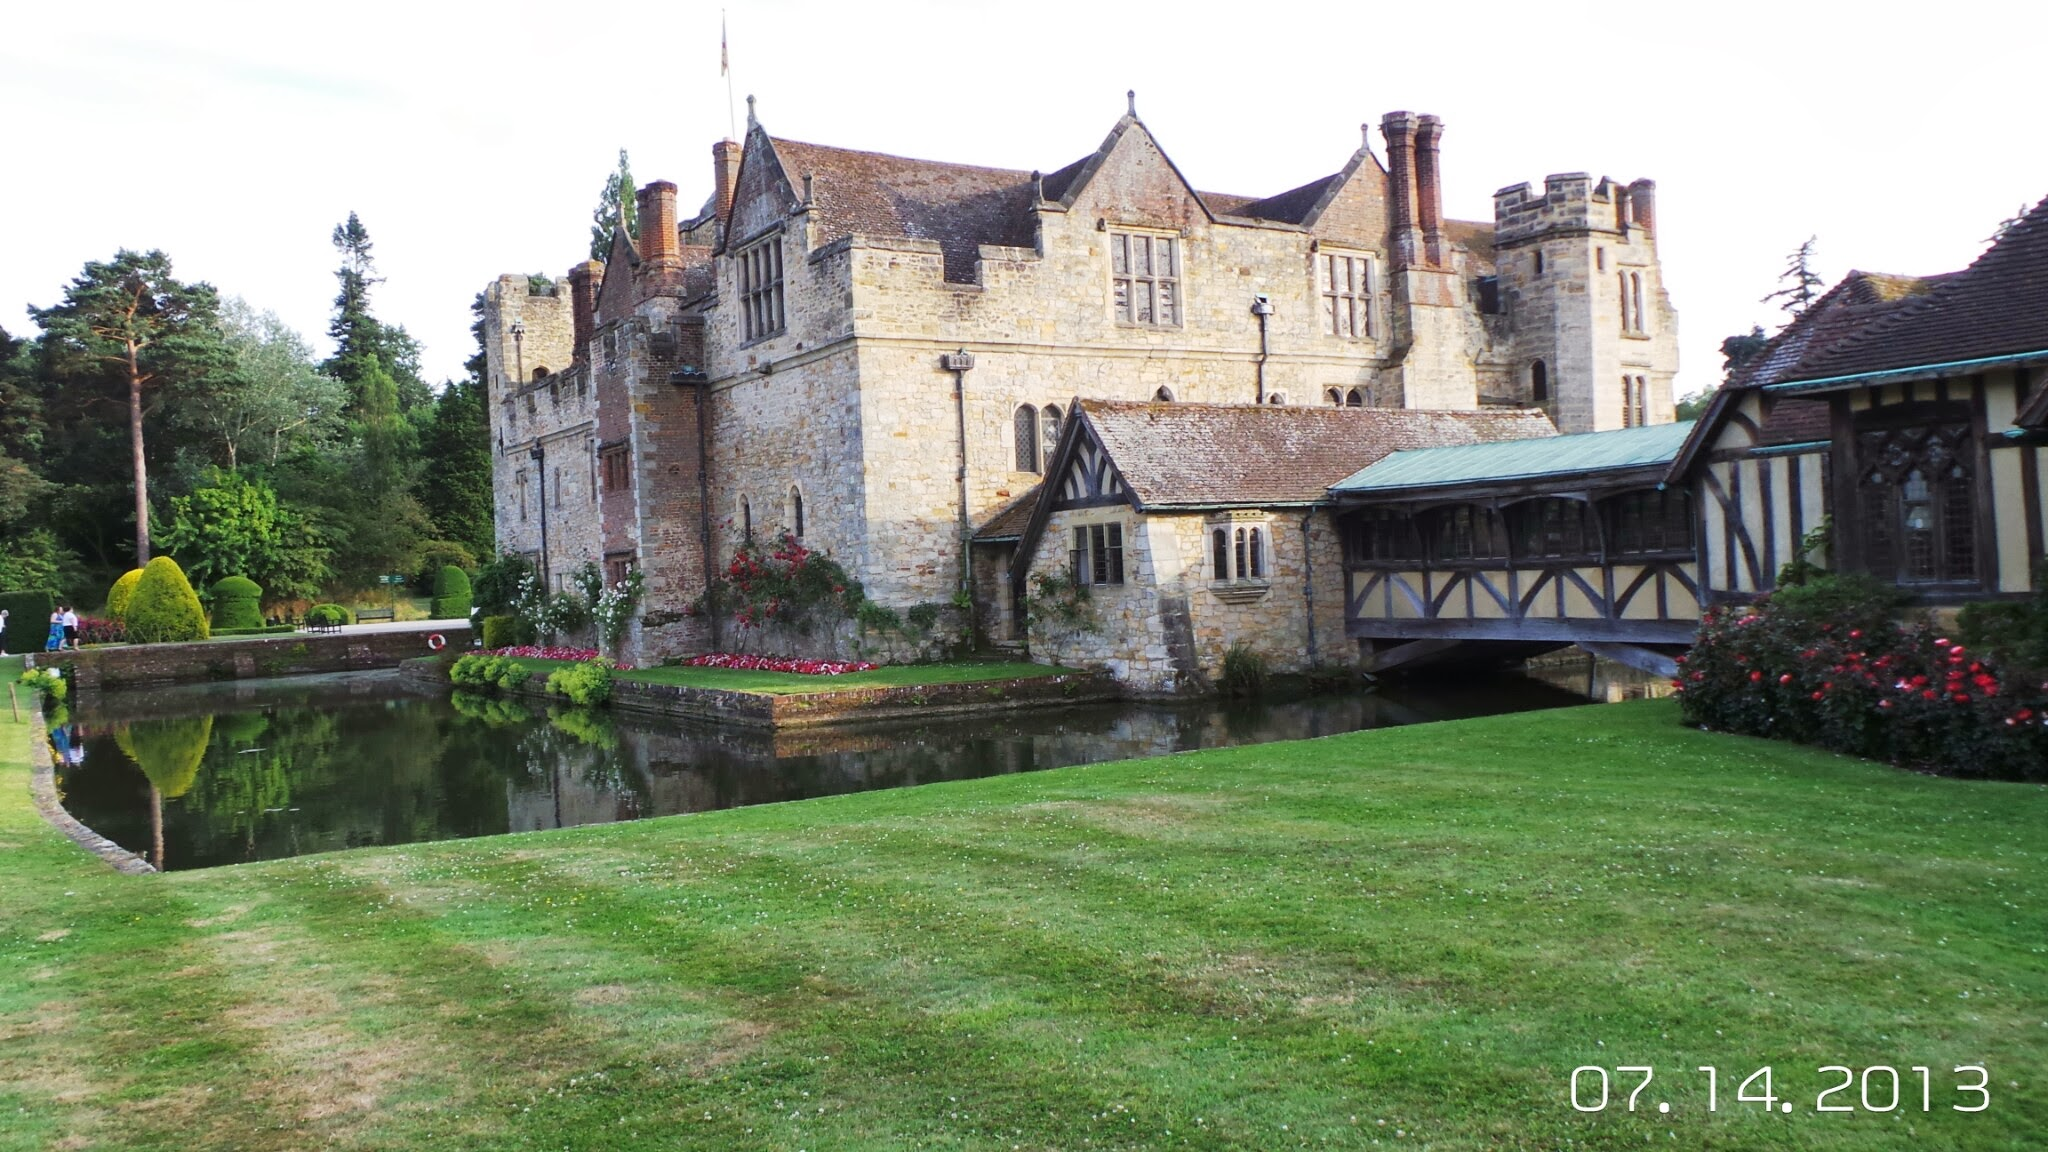 Hever Castle, Anne Boleyn's childhood home